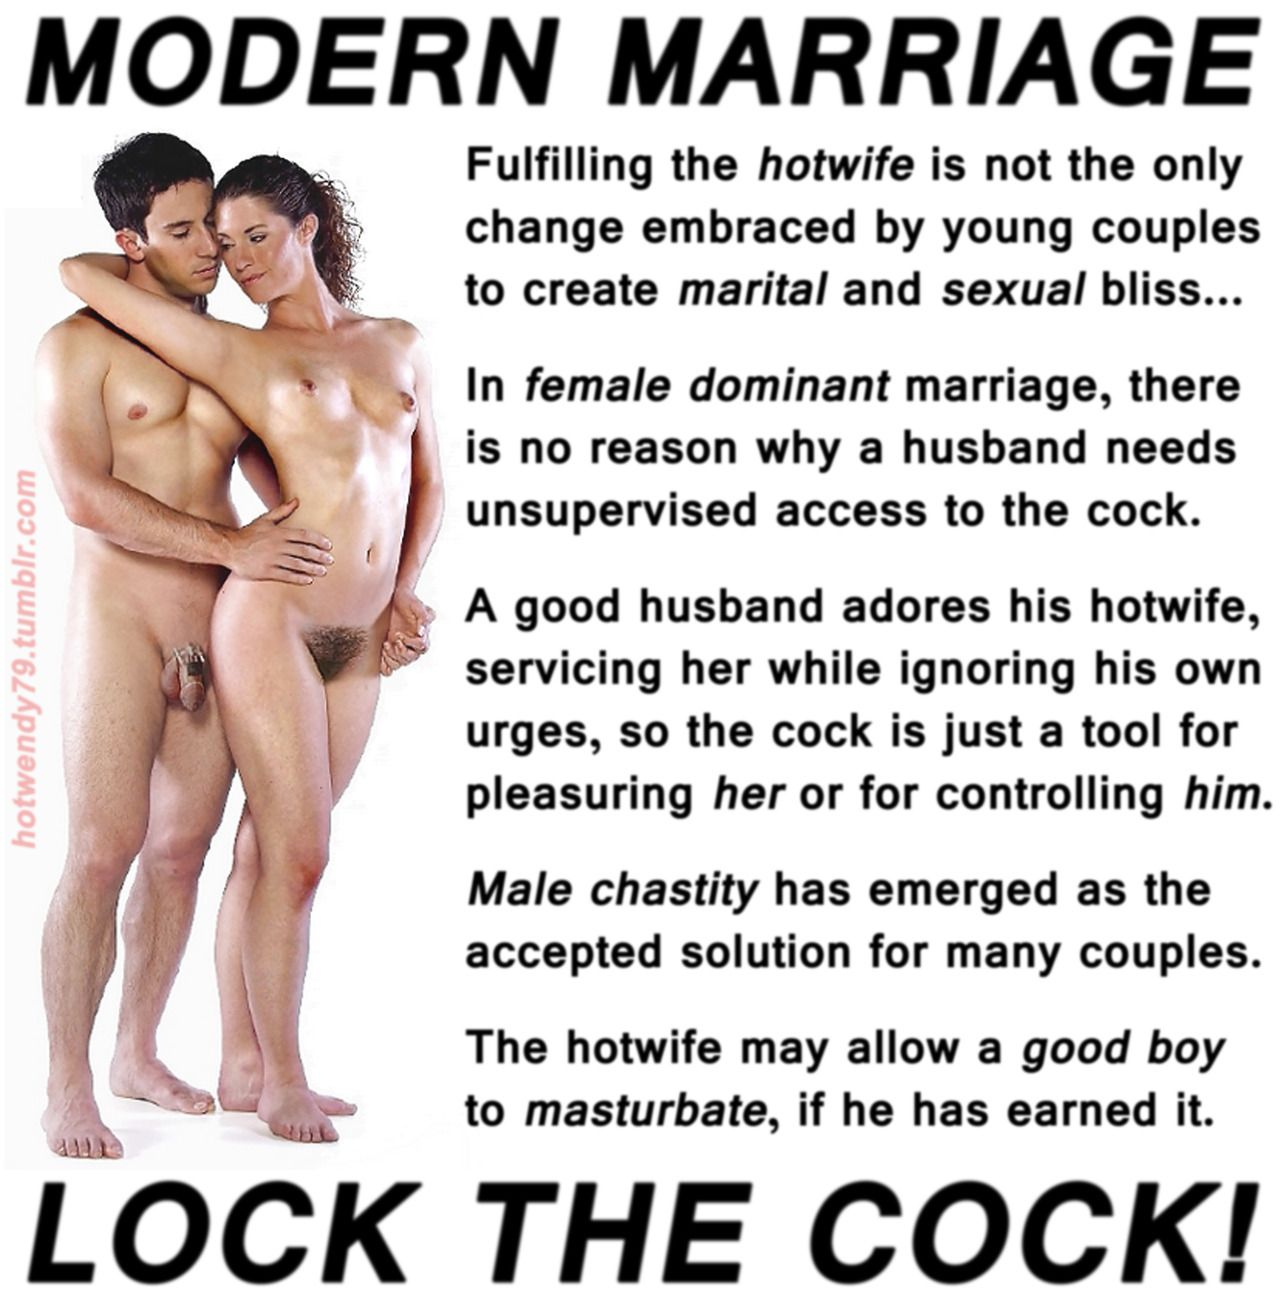 Real reasons for sex before marriage